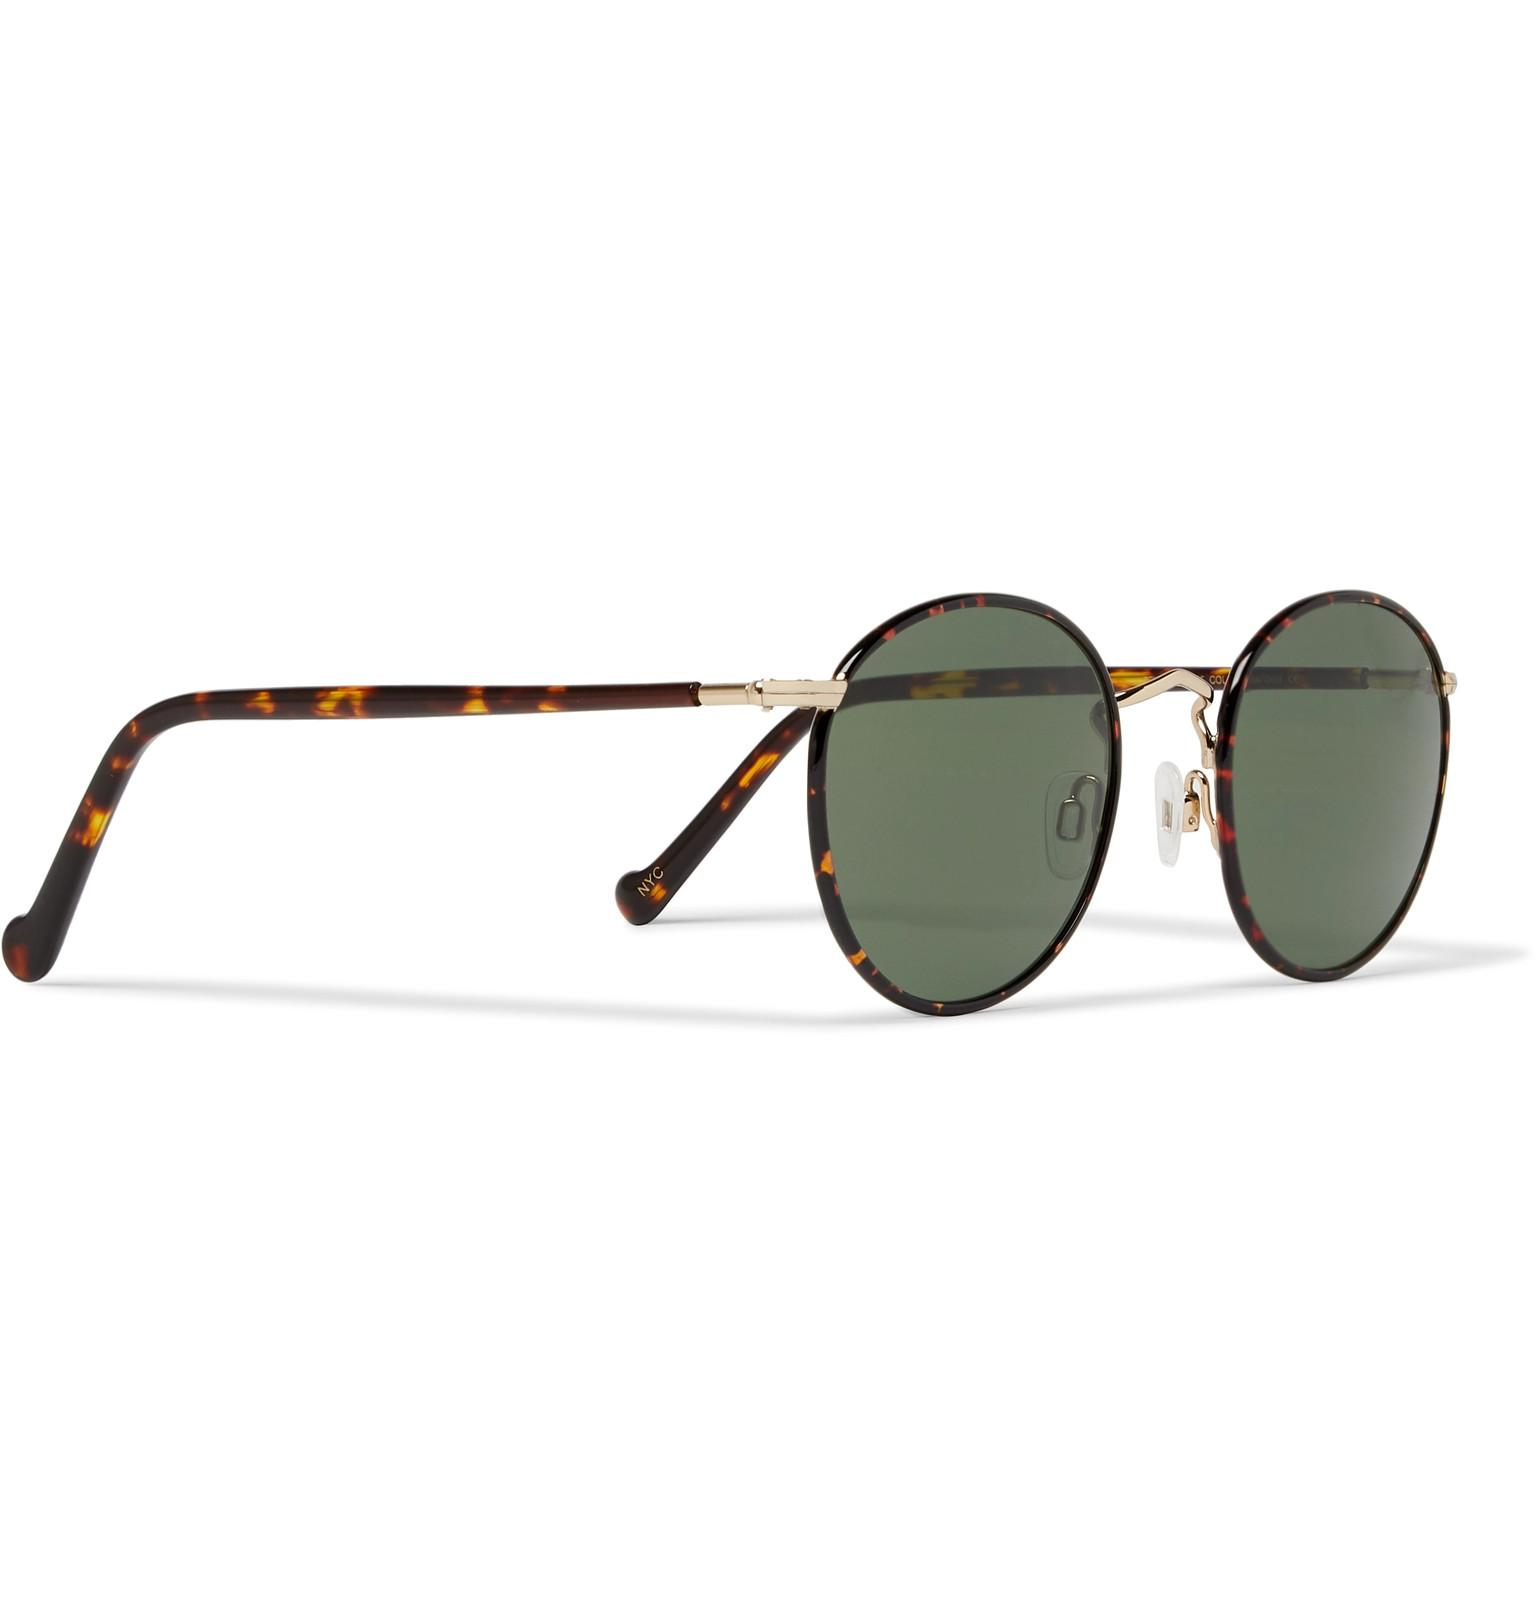 27a17fb961 Moscot - Multicolor Zev Round-frame Tortoiseshell And Gold-tone Titanium  Sunglasses for Men. View fullscreen